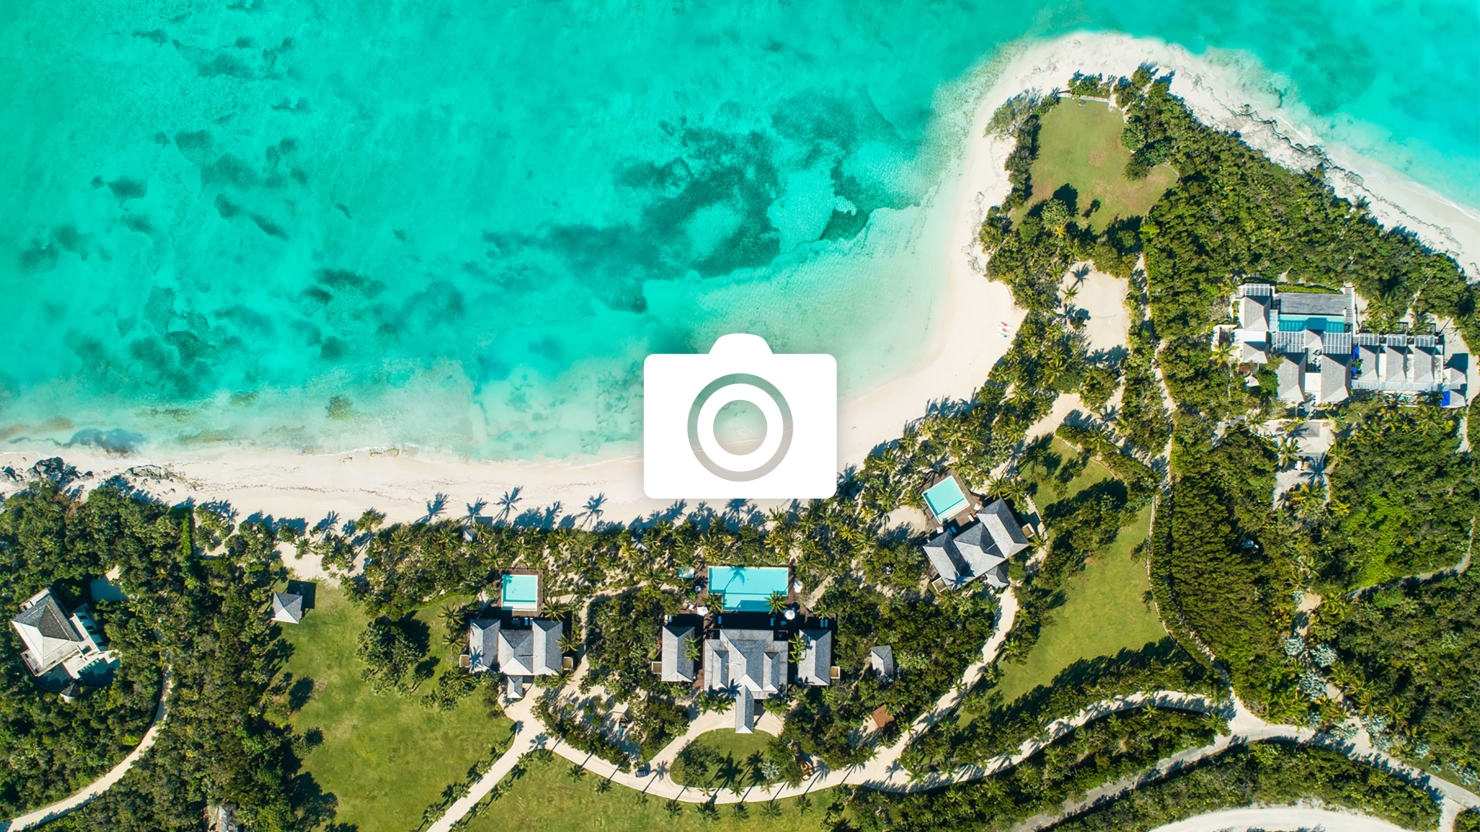 OMG I Want This House: Bruce Willis' Turks and Caicos Home